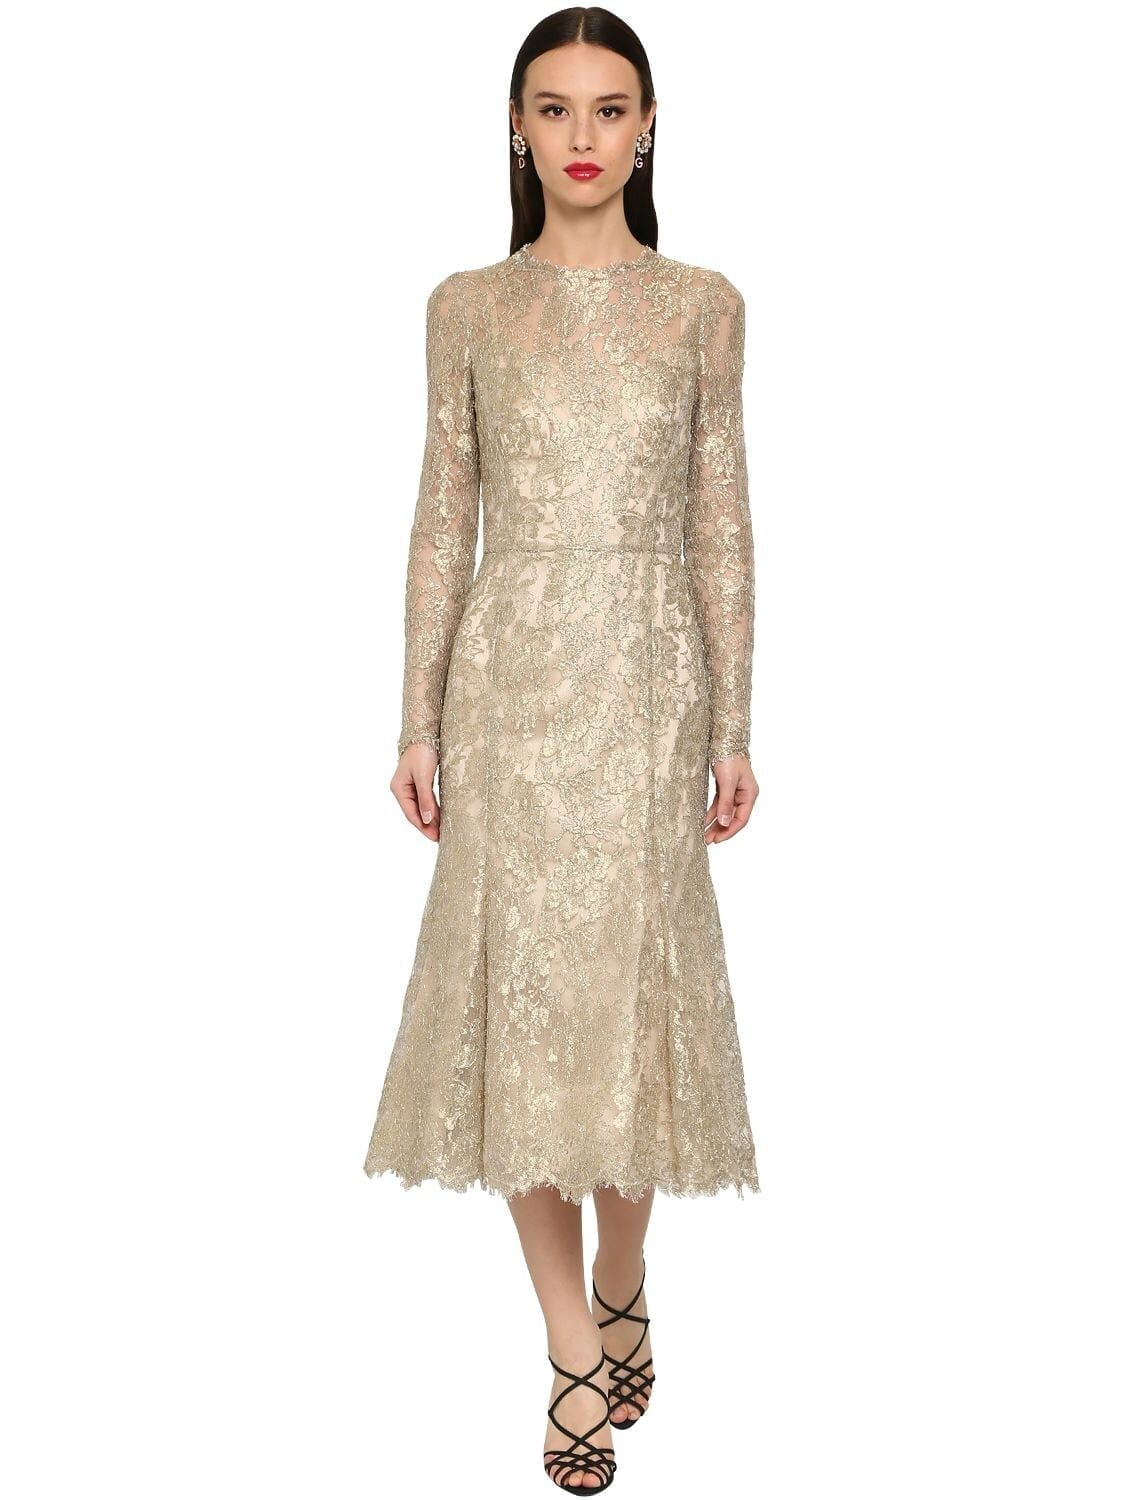 DOLCE & GABBANA Sheer Chantilly Lace Lamé Midi Dress